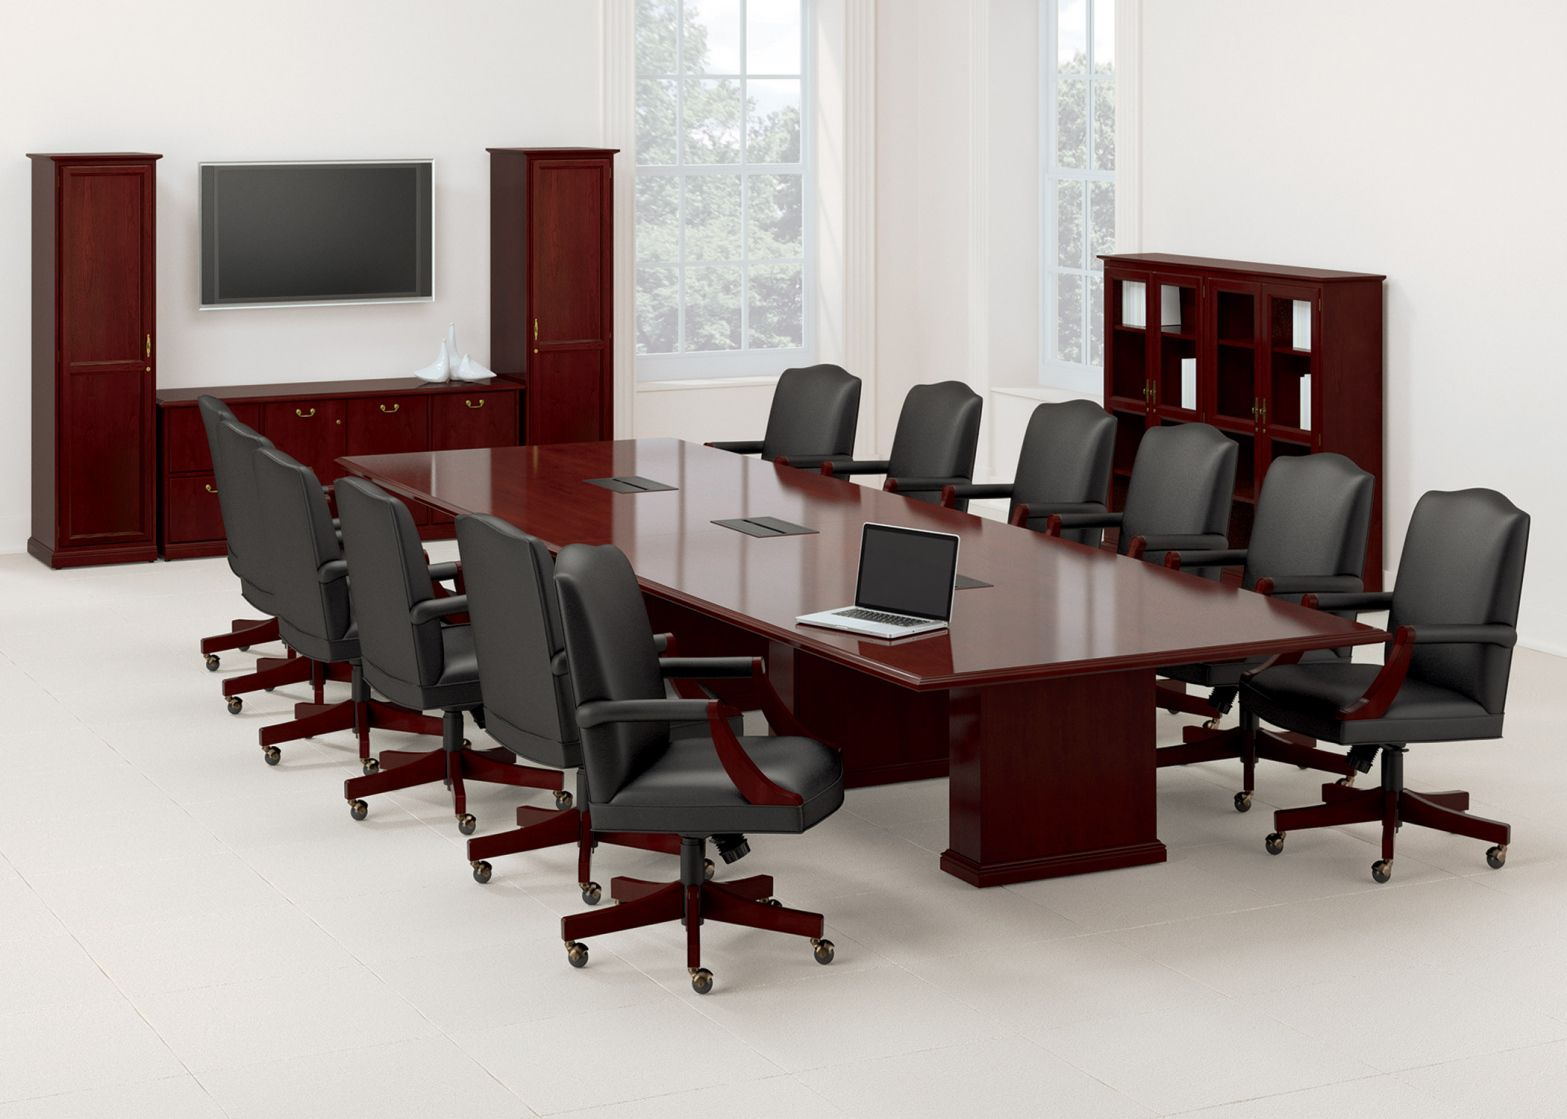 70 Office Meeting Room Tables Country Home Office Furniture Check More At Http Adidasjrcamp Com 99 Office Meeting Room Tables Use With Images Home Office Furniture Desk